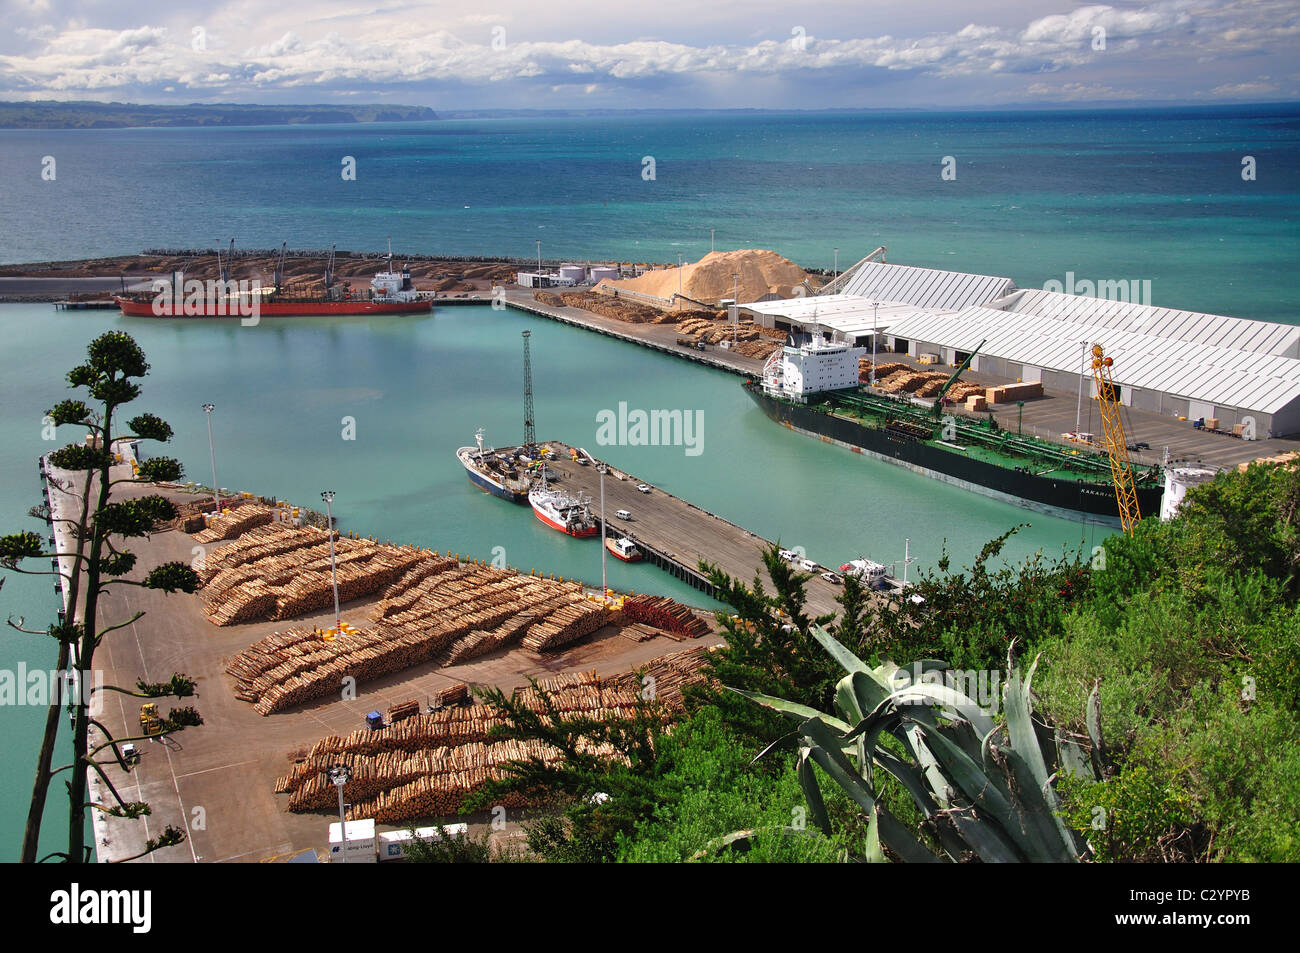 Logging ship in Napier Harbour, Napier, Hawke's Bay, North Island, New Zealand - Stock Image